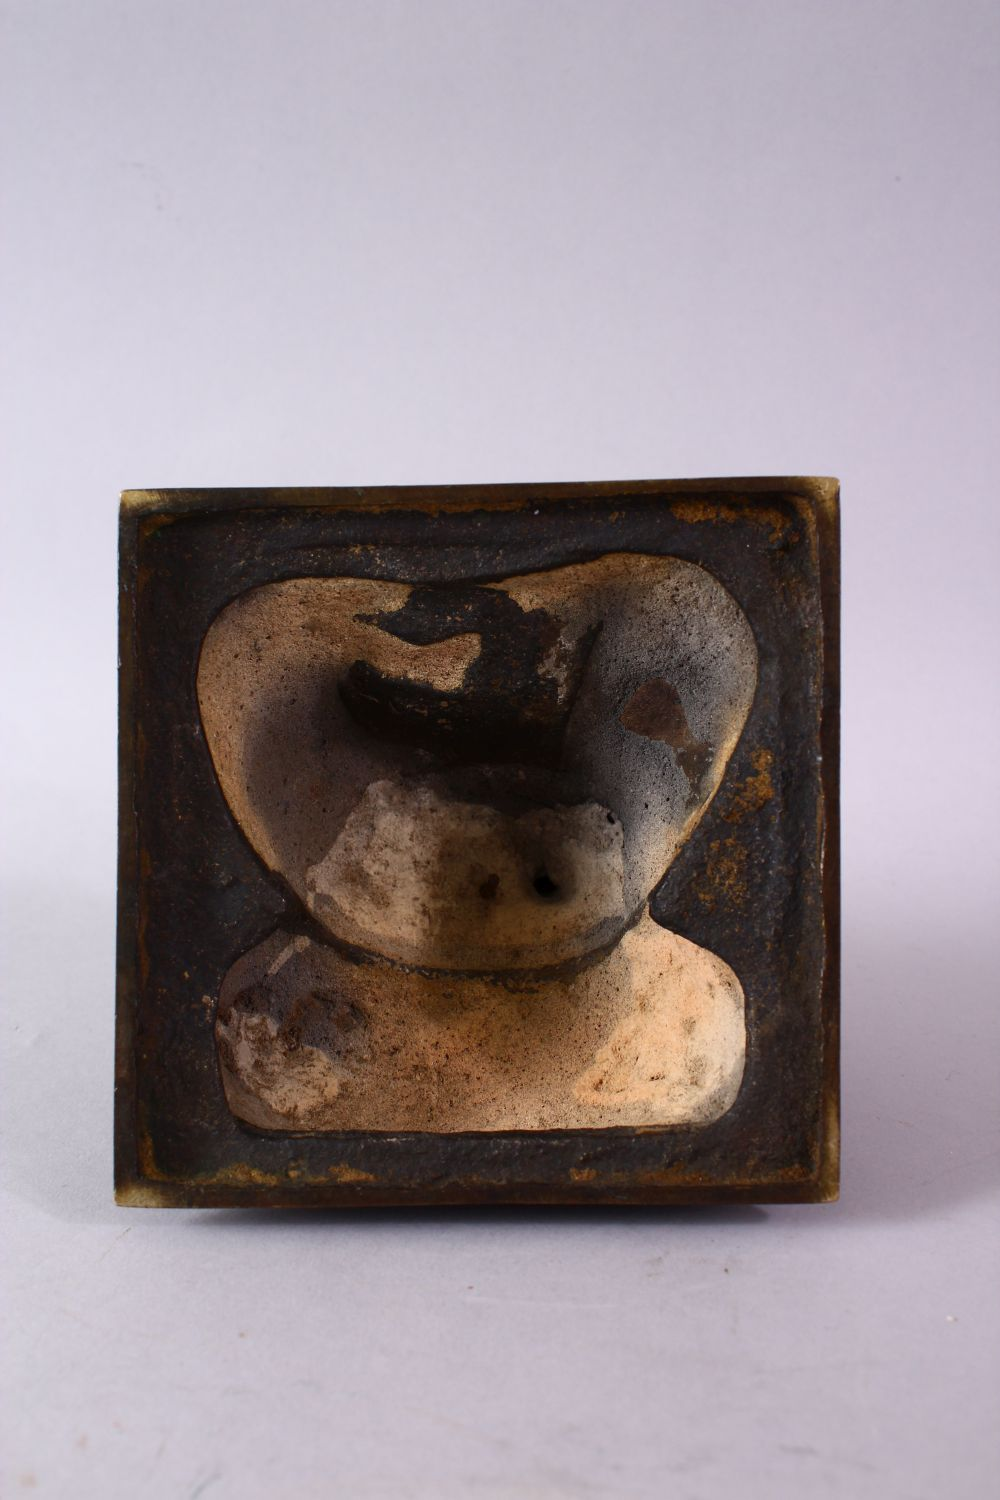 AN 18TH/19TH CENTURY BRONZE SEATED FIGURE OF A SCHOLAR, on a square base, 17cm high. - Image 6 of 6